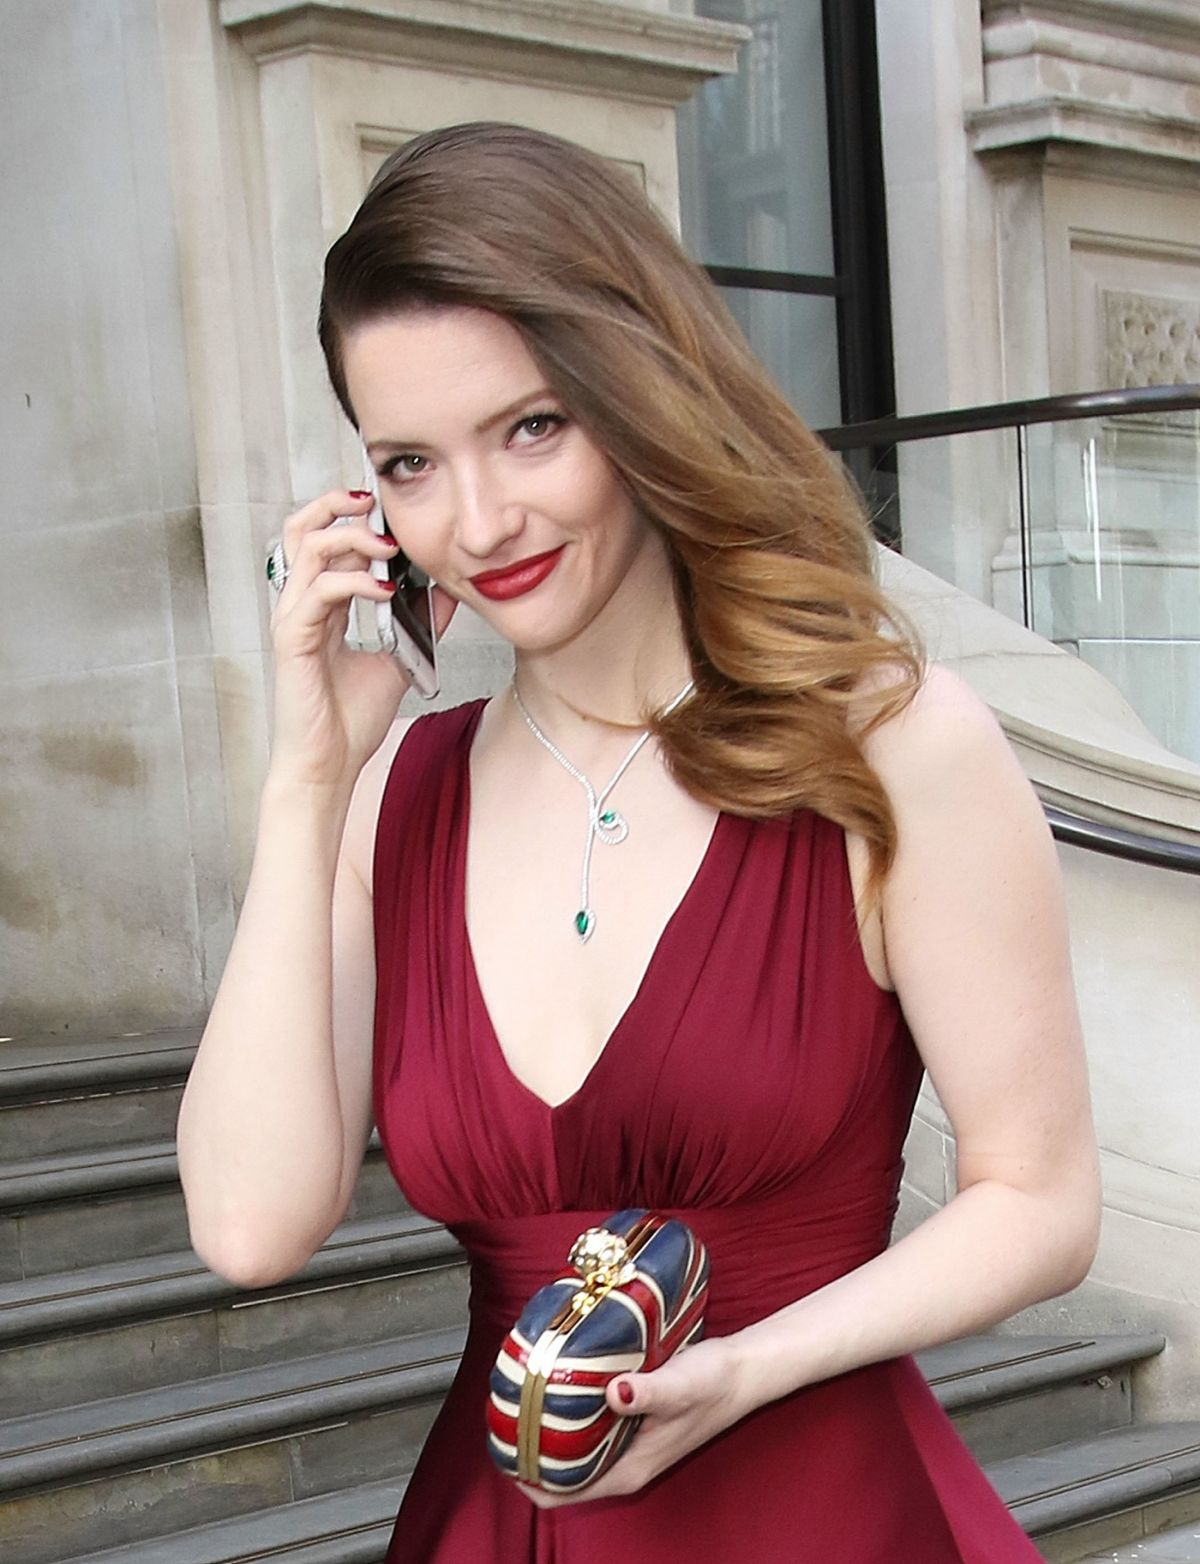 talulah riley фотоtalulah riley westworld, talulah riley instagram, talulah riley inception, talulah riley tumblr, talulah riley photo, talulah riley фото, talulah riley about elon musk, talulah riley 2017, talulah riley wallpaper, talulah riley vk, talulah riley 2016, talulah riley imdb, talulah riley book, talulah riley movies, talulah riley fb, talulah riley fan site, talulah riley net worth, talulah riley filmography, talulah riley acts of love, talulah riley husband